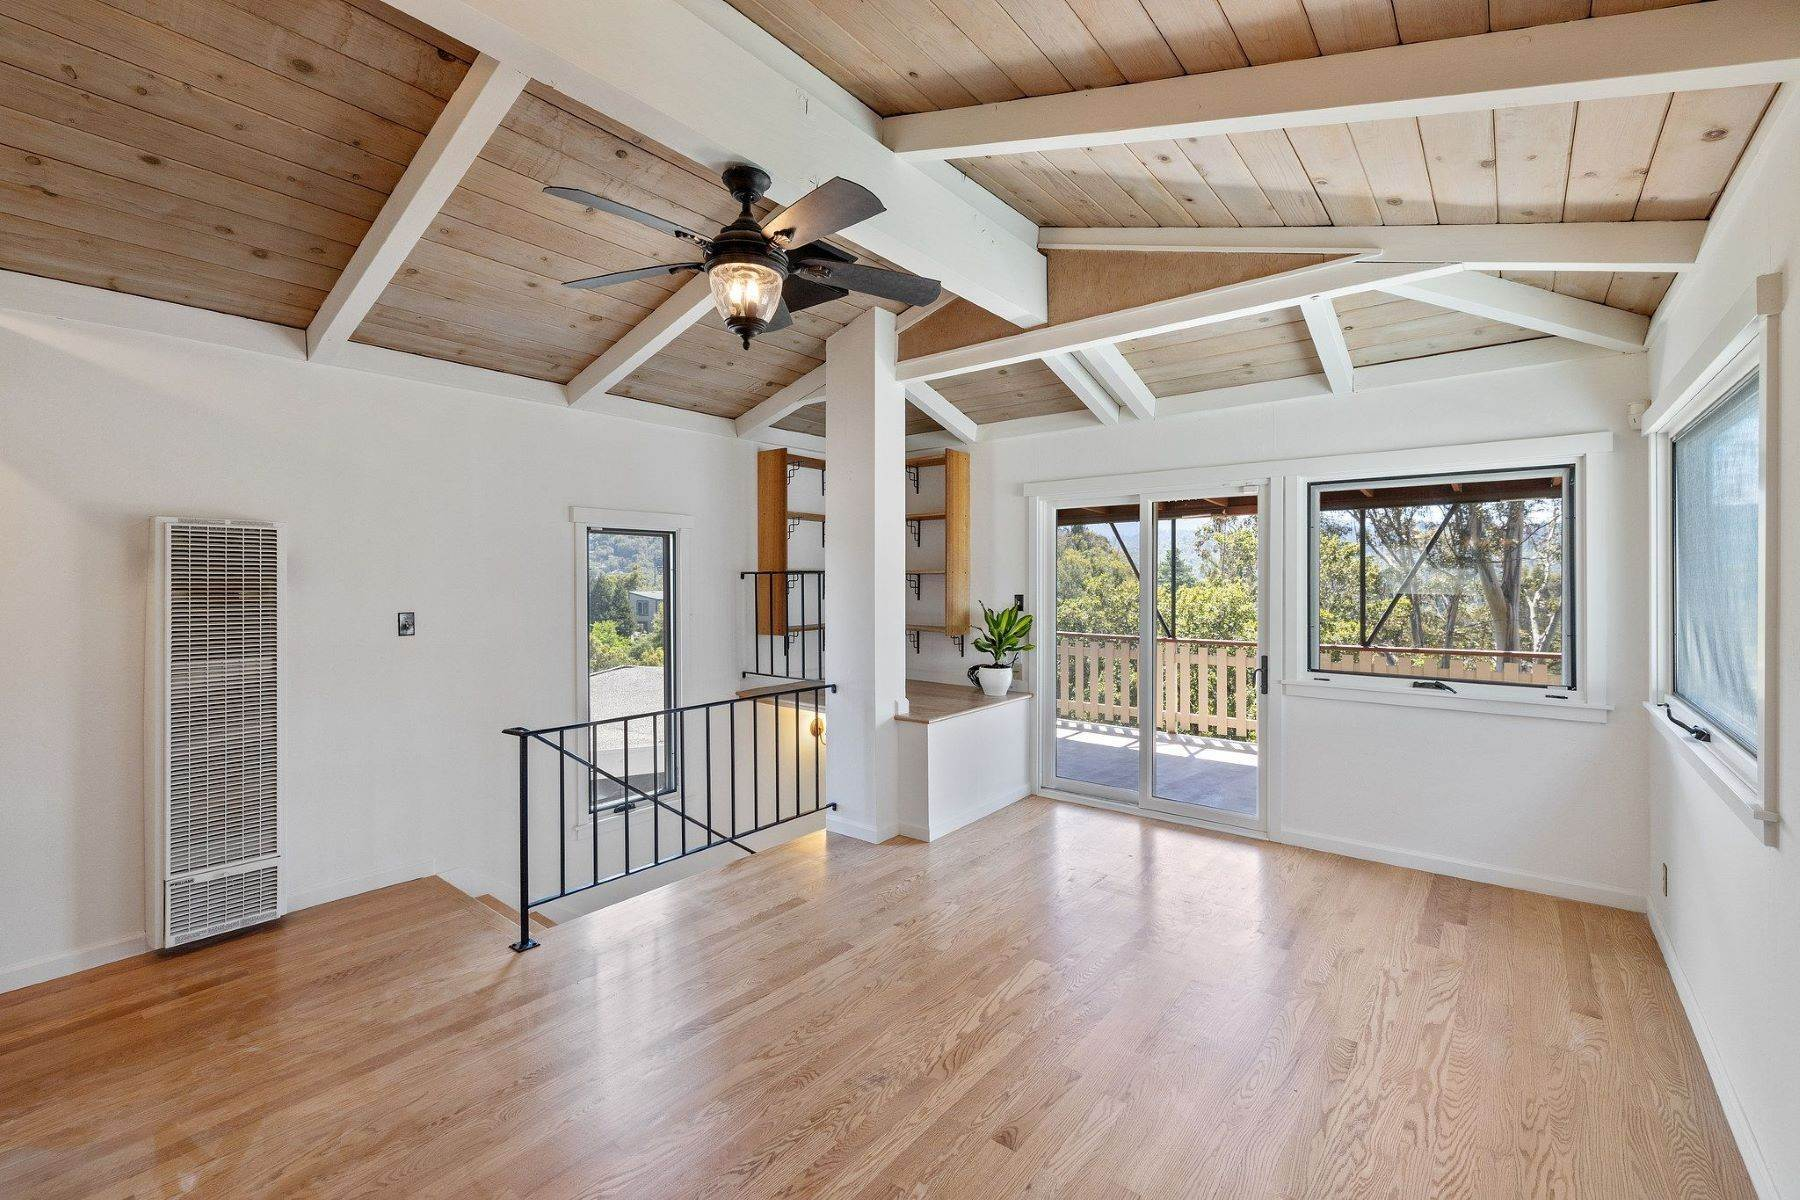 8. Single Family Homes for Sale at Adorable Fairfax Cottage 148 Ridgeway Avenue Fairfax, California 94930 United States